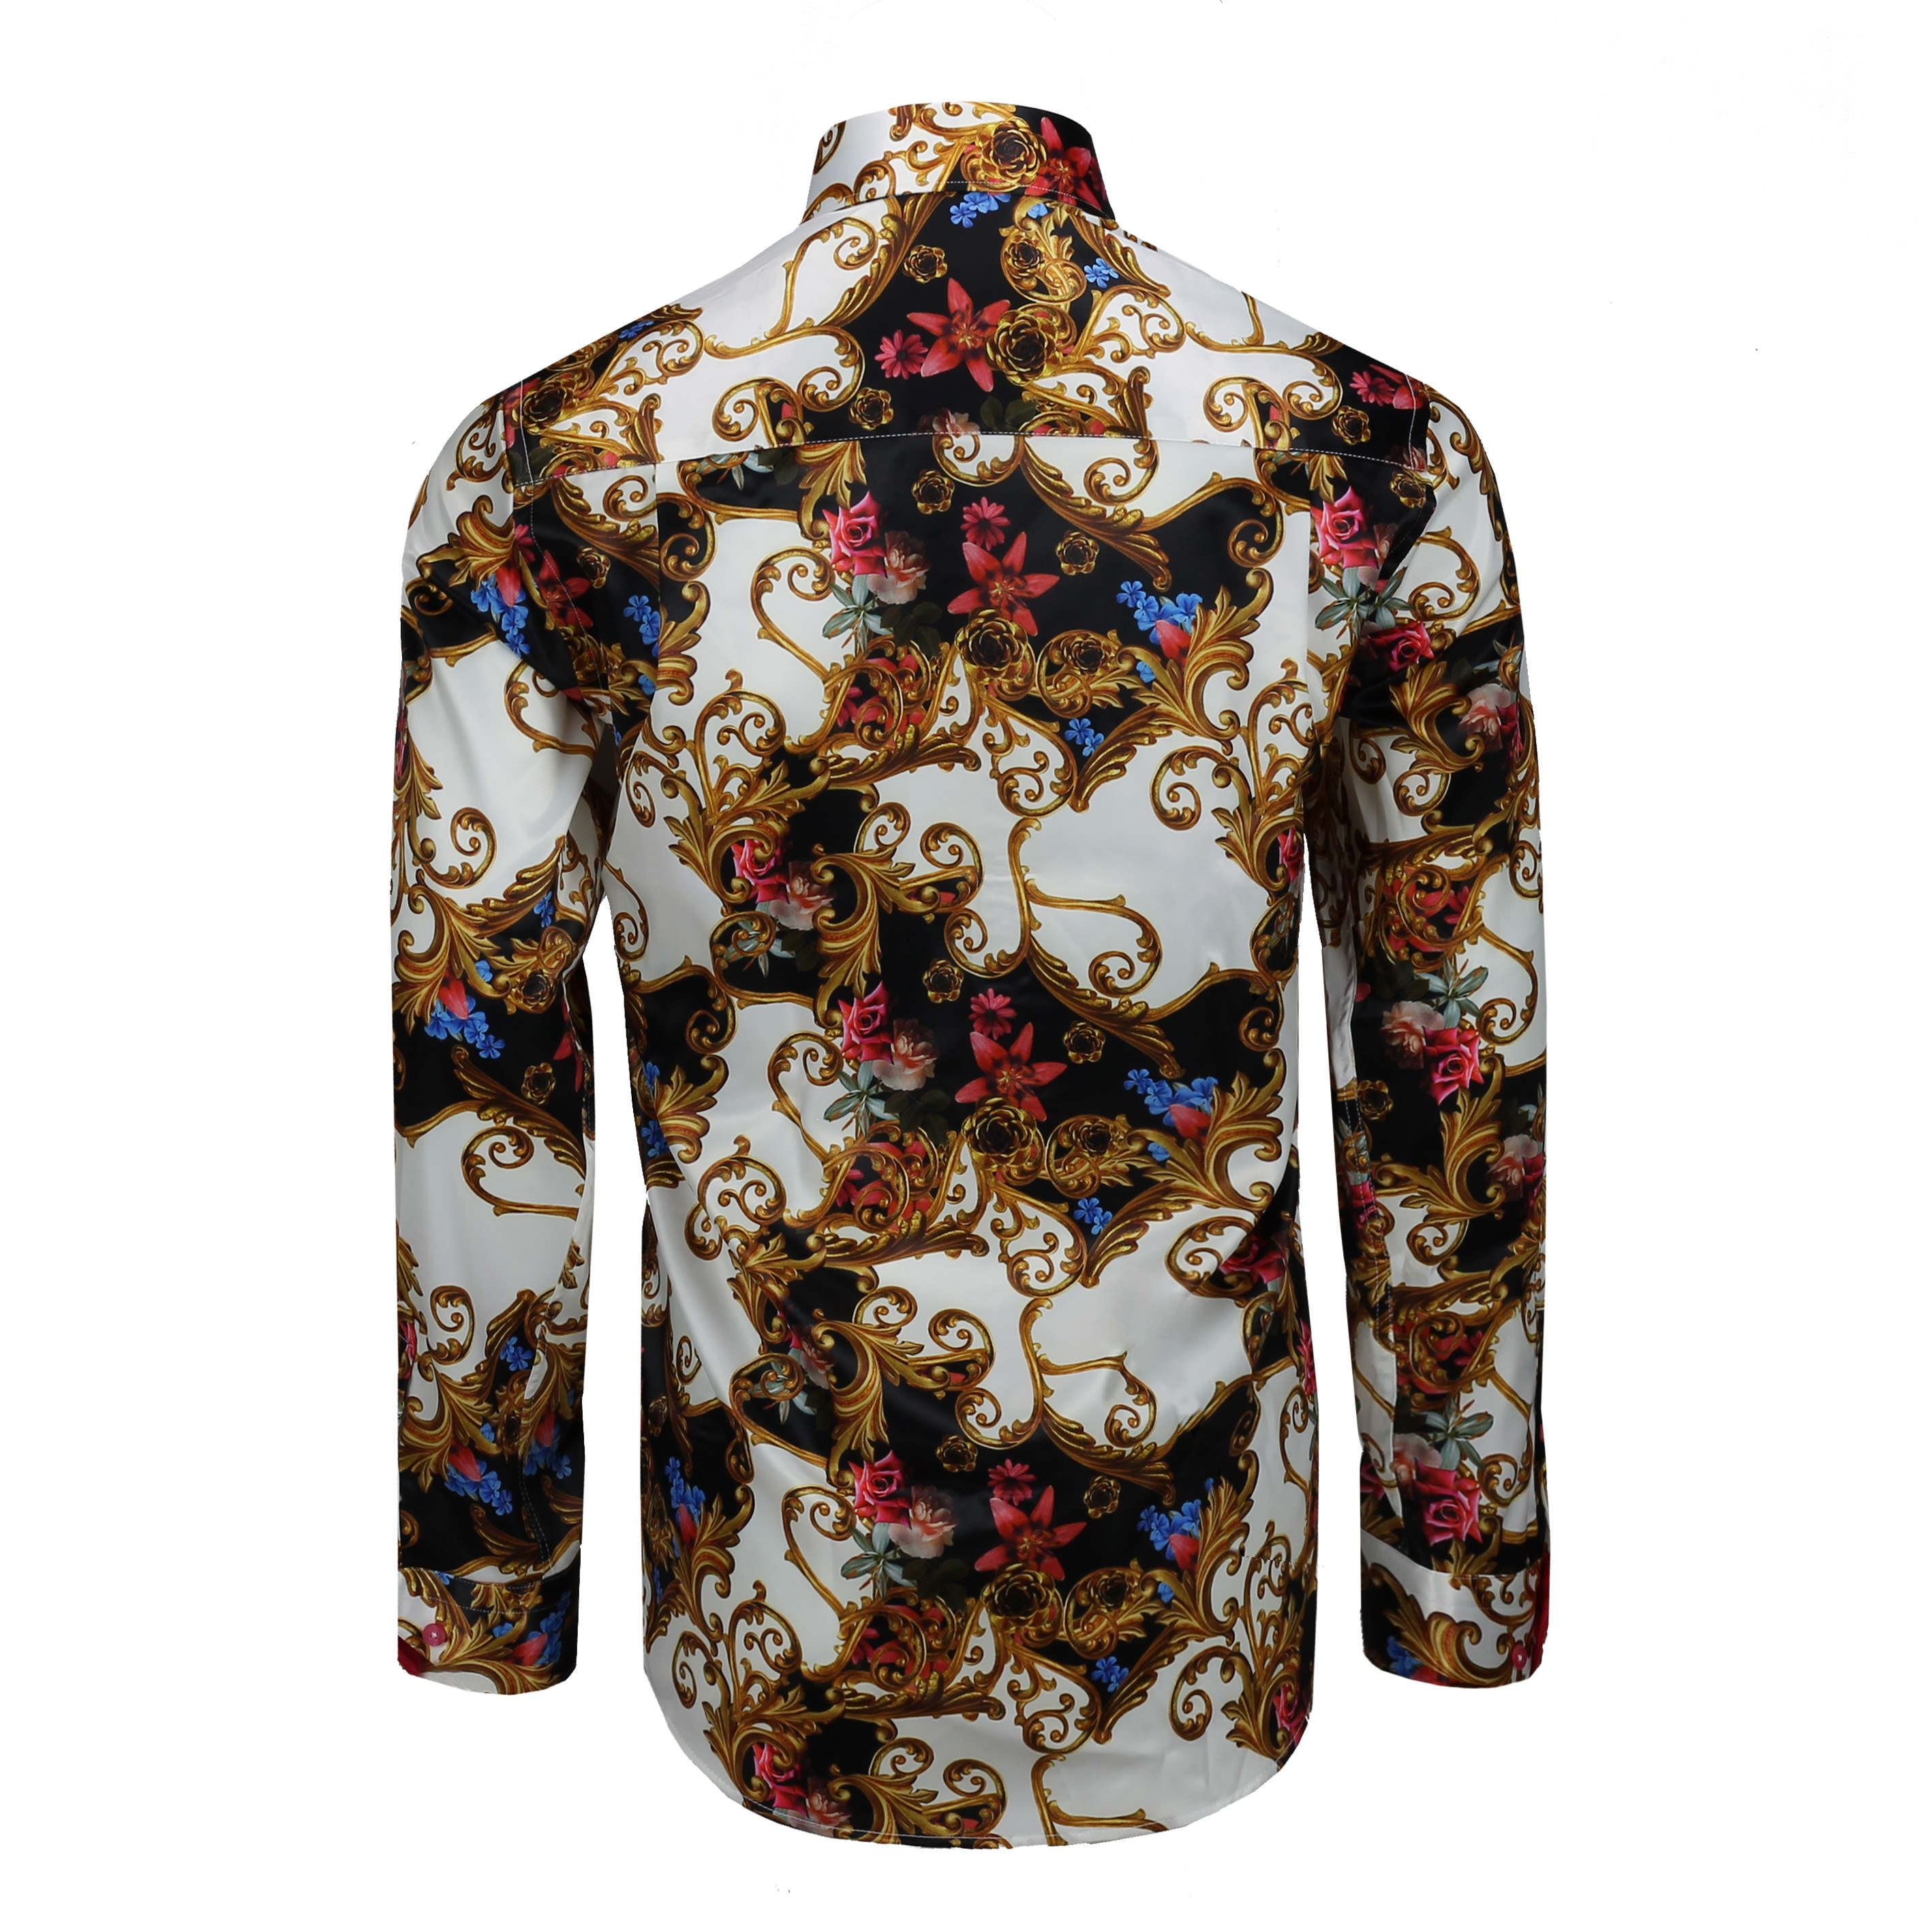 Mens Floral Designer Shirts Uk Rldm